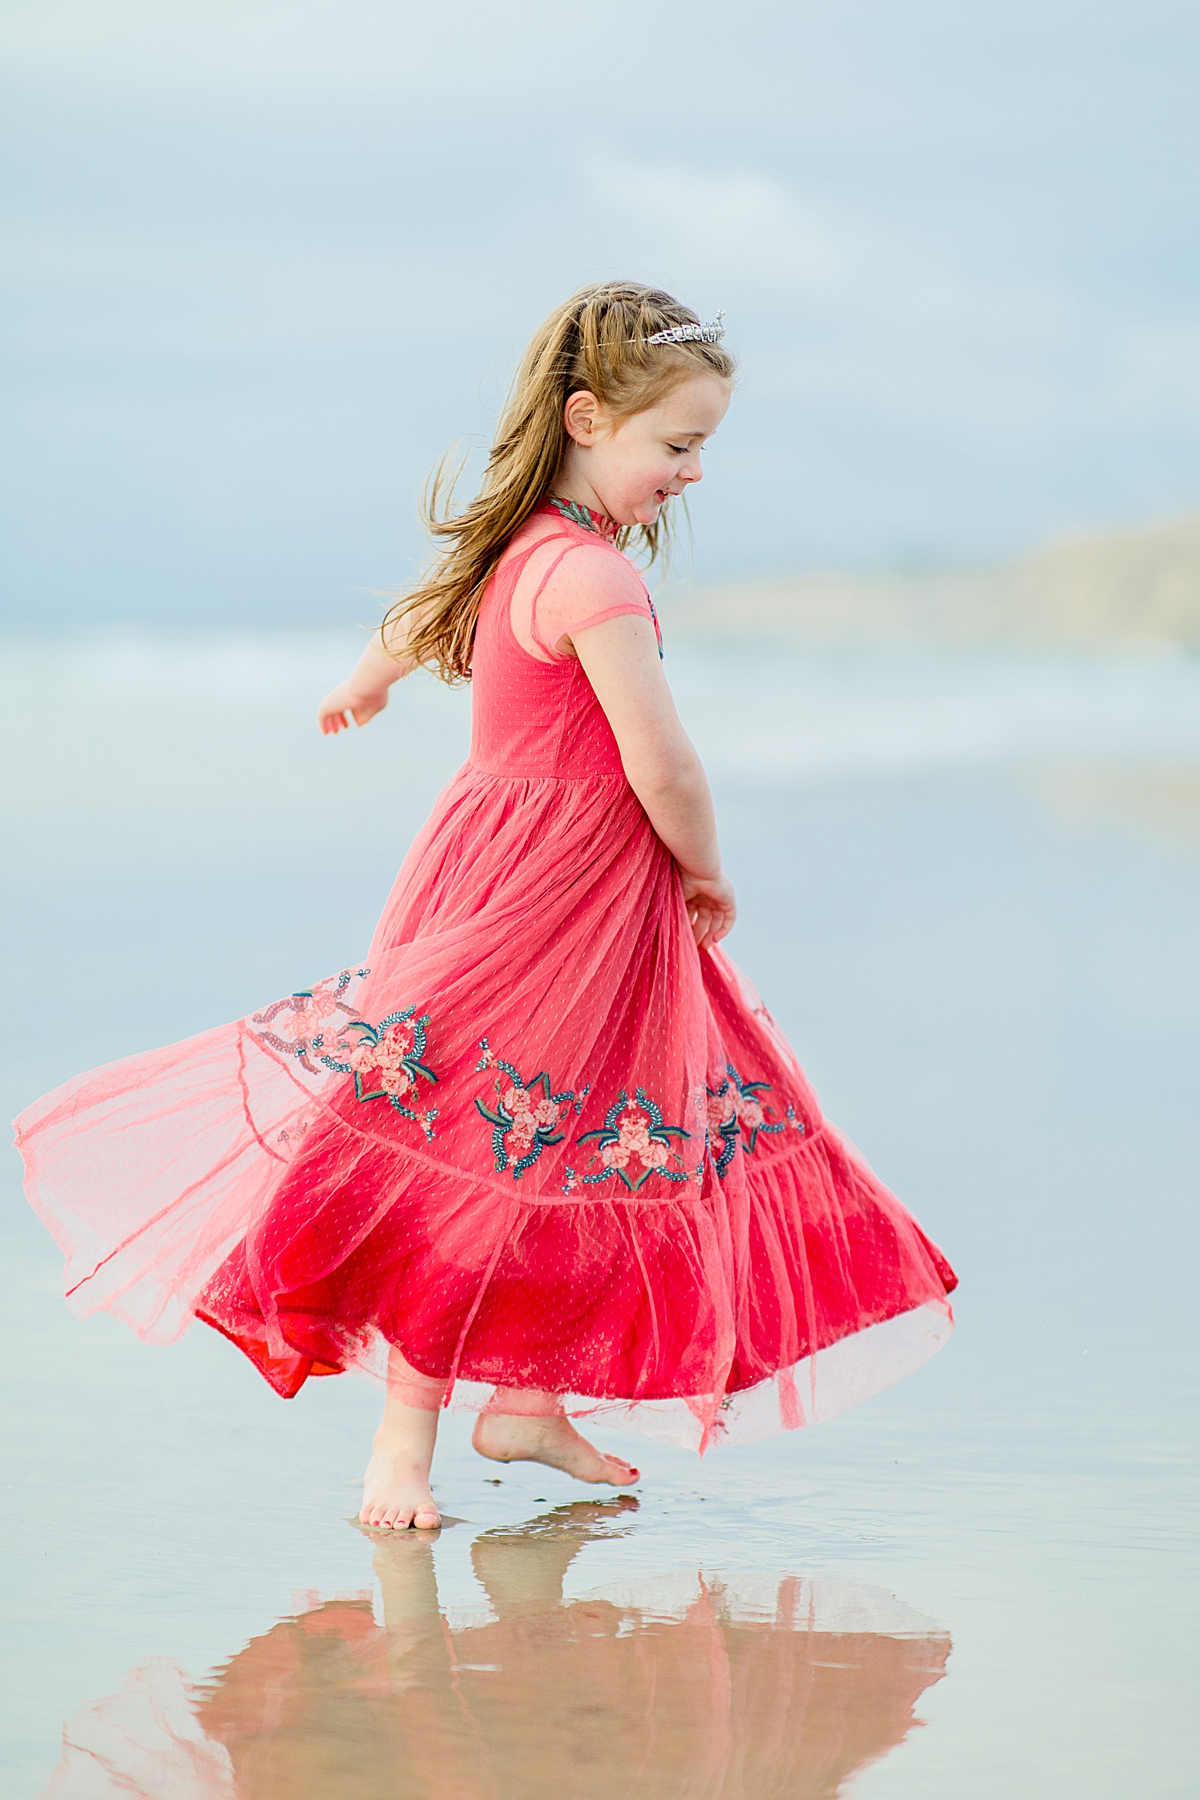 Spinning dress on the beach